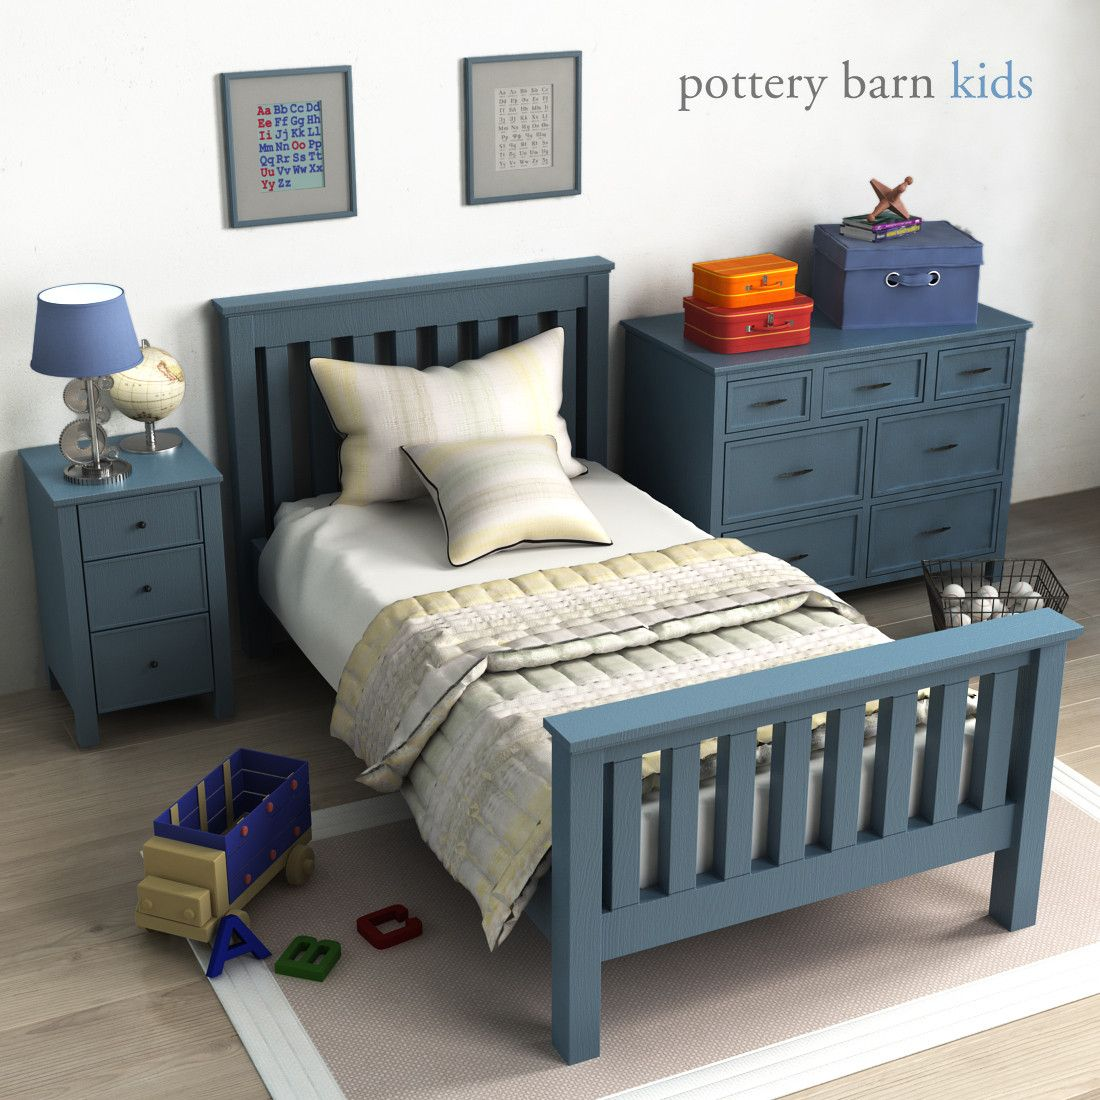 Pottery barn, Elliott Bed Bed, Pottery barn, Toddler bed